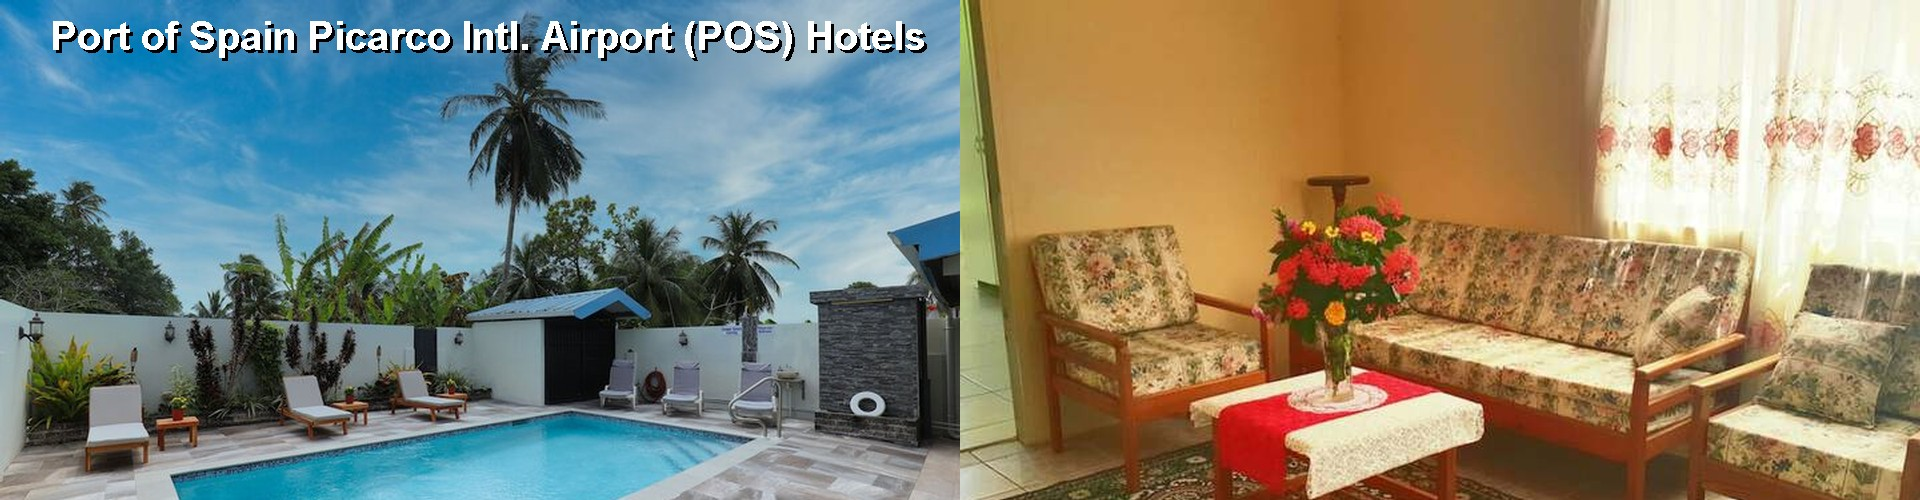 5 Best Hotels Near Port Of Spain Picarco Intl Airport Pos